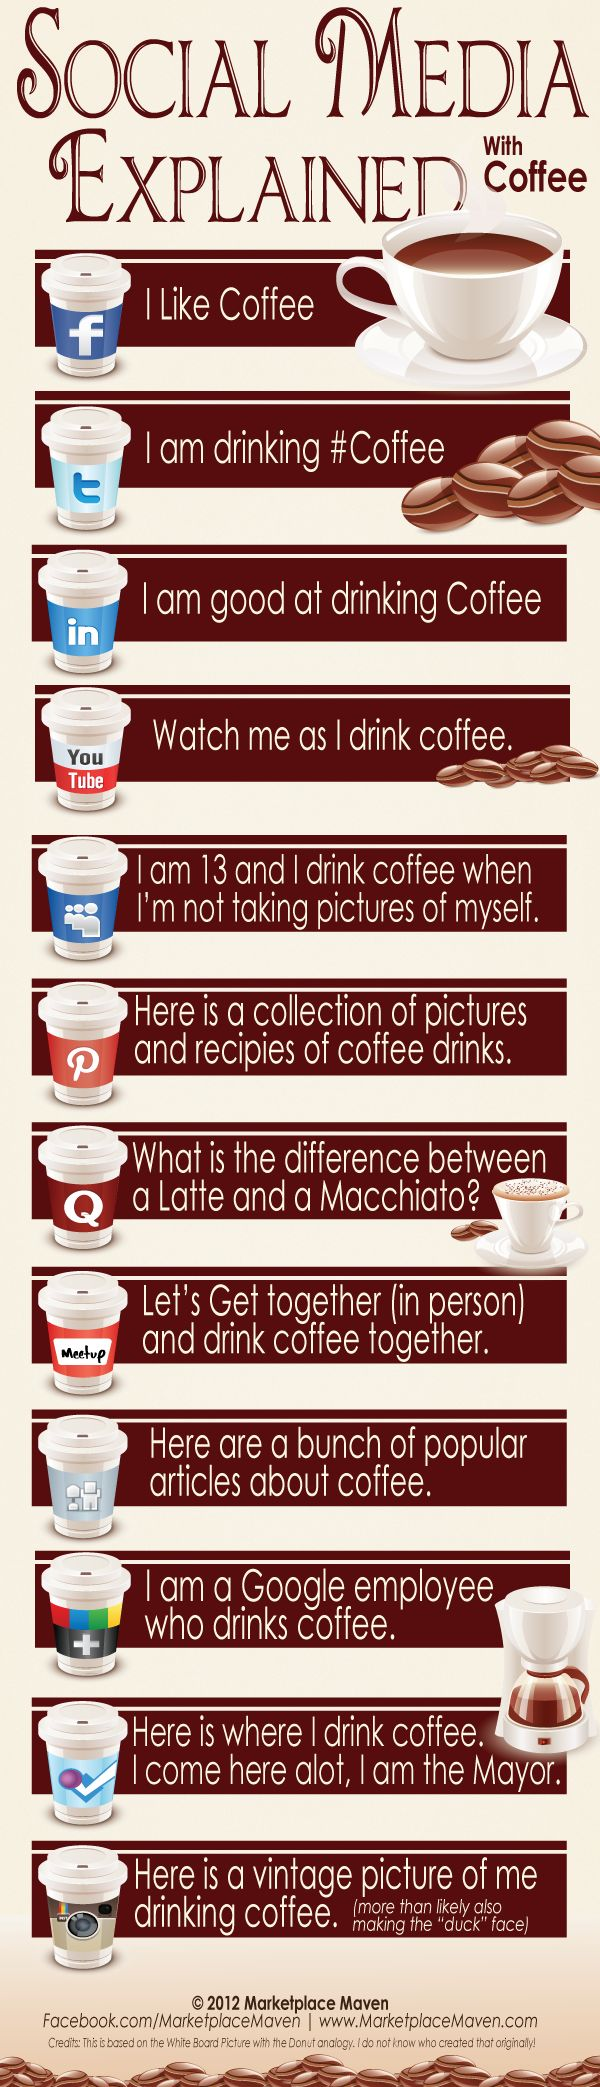 Social Media Explained (With Coffee) @ Pinfographics - Too good not to pass along!